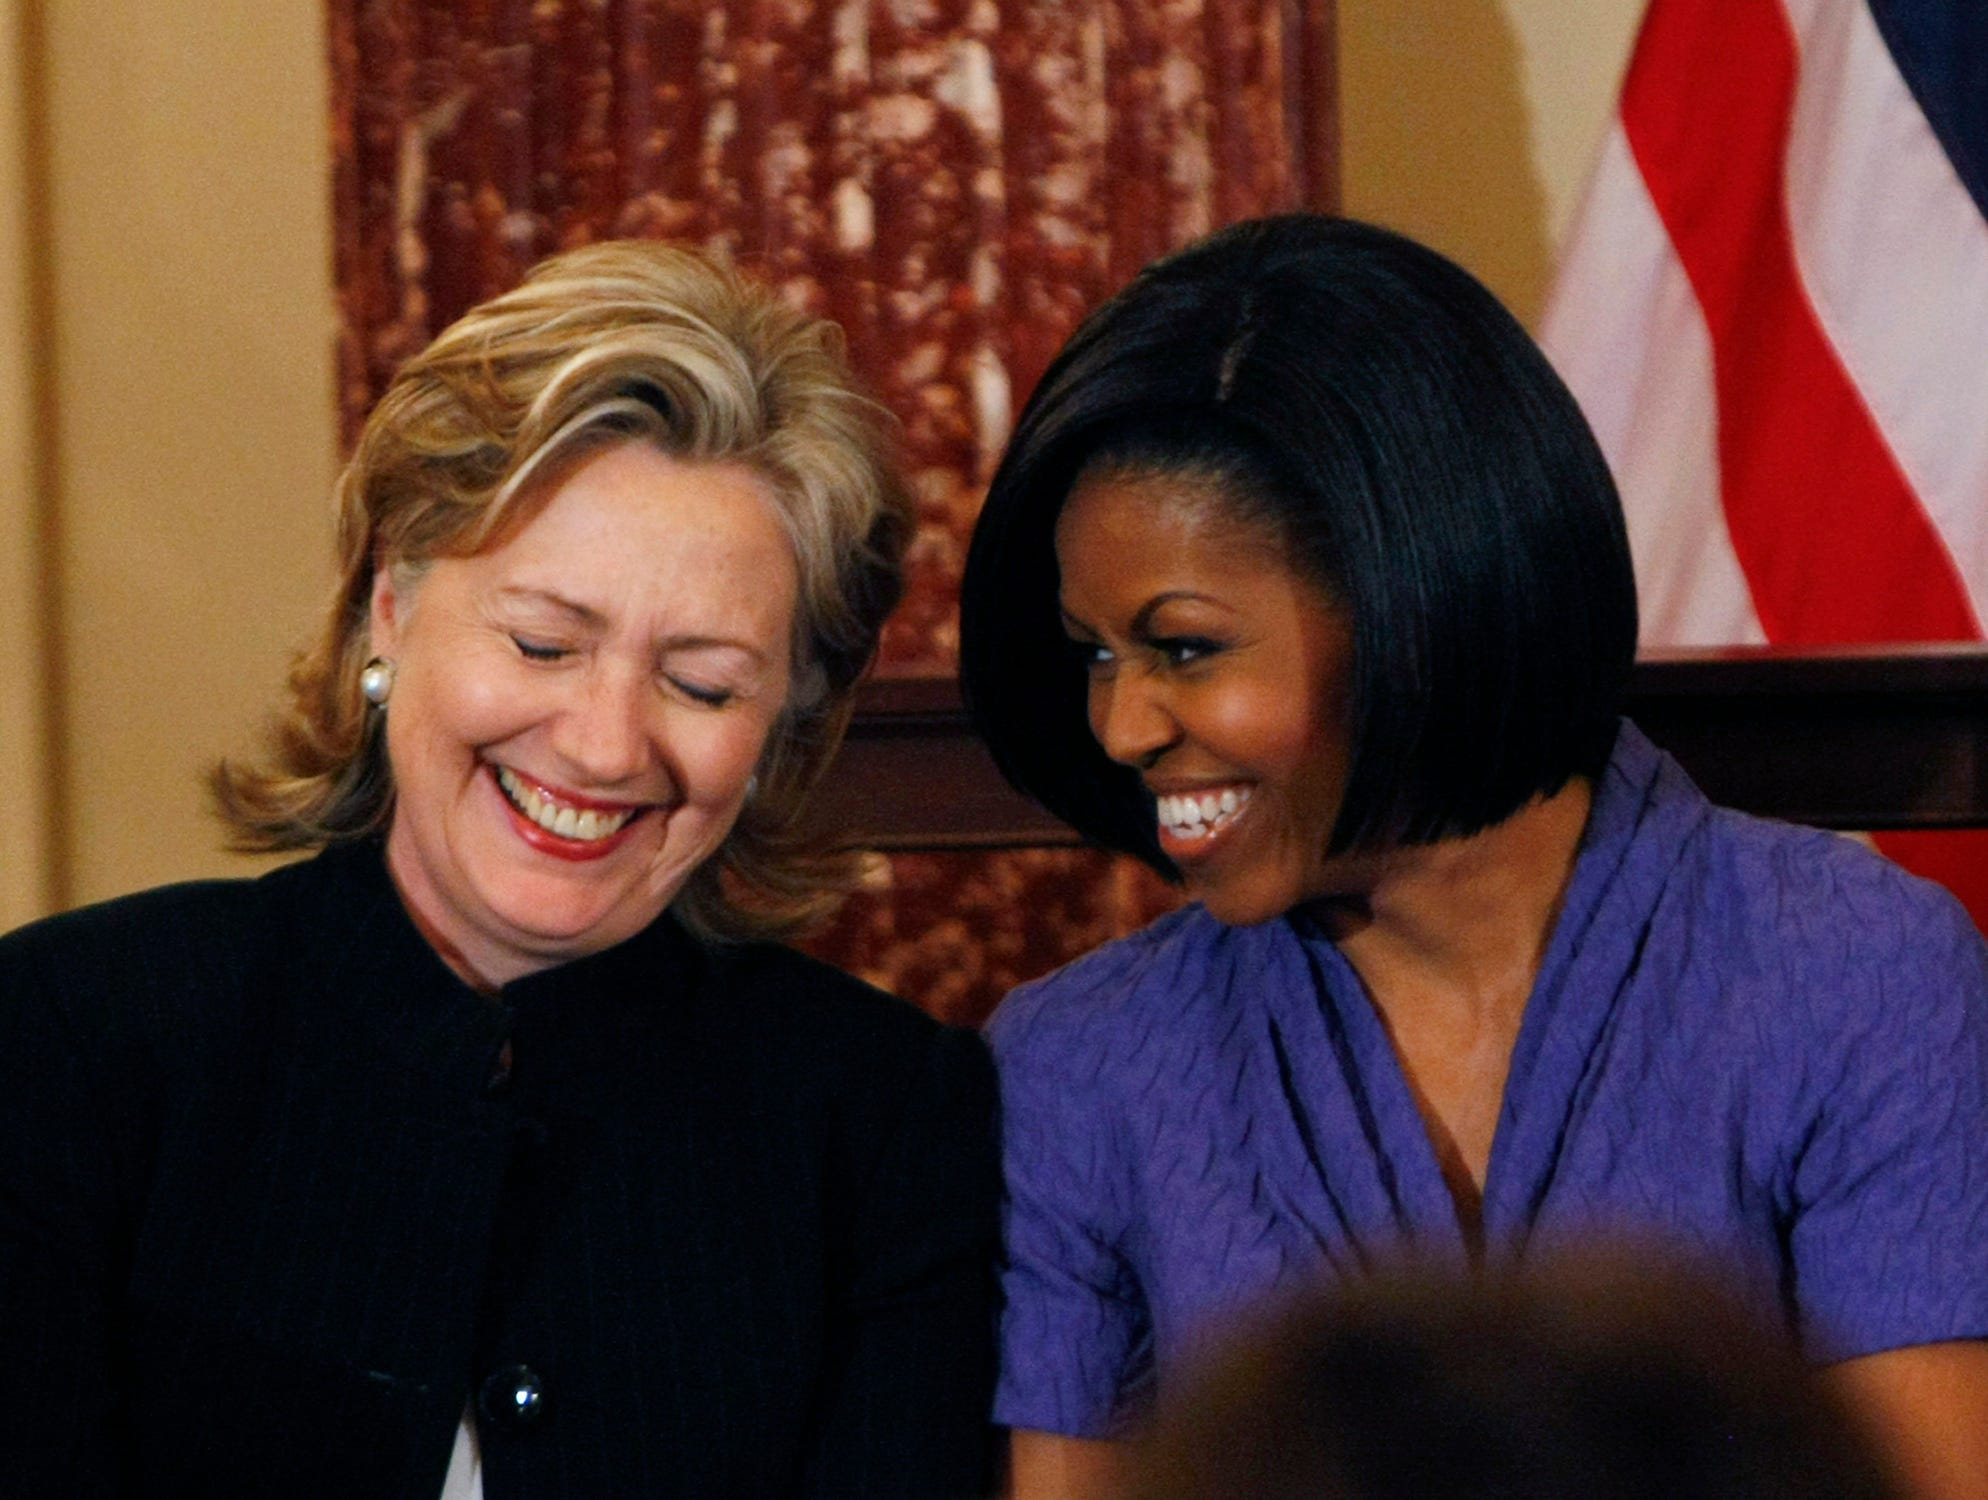 First lady Michelle Obama and Secretary of State Hillary Rodham Clinton share a laugh as they present the 2010 International Women of Courage Awards, Wednesday, March 10, 2010, at the State Department in Washington. (AP Photo/Gerald Herbert) ORG XMIT: DCGH108